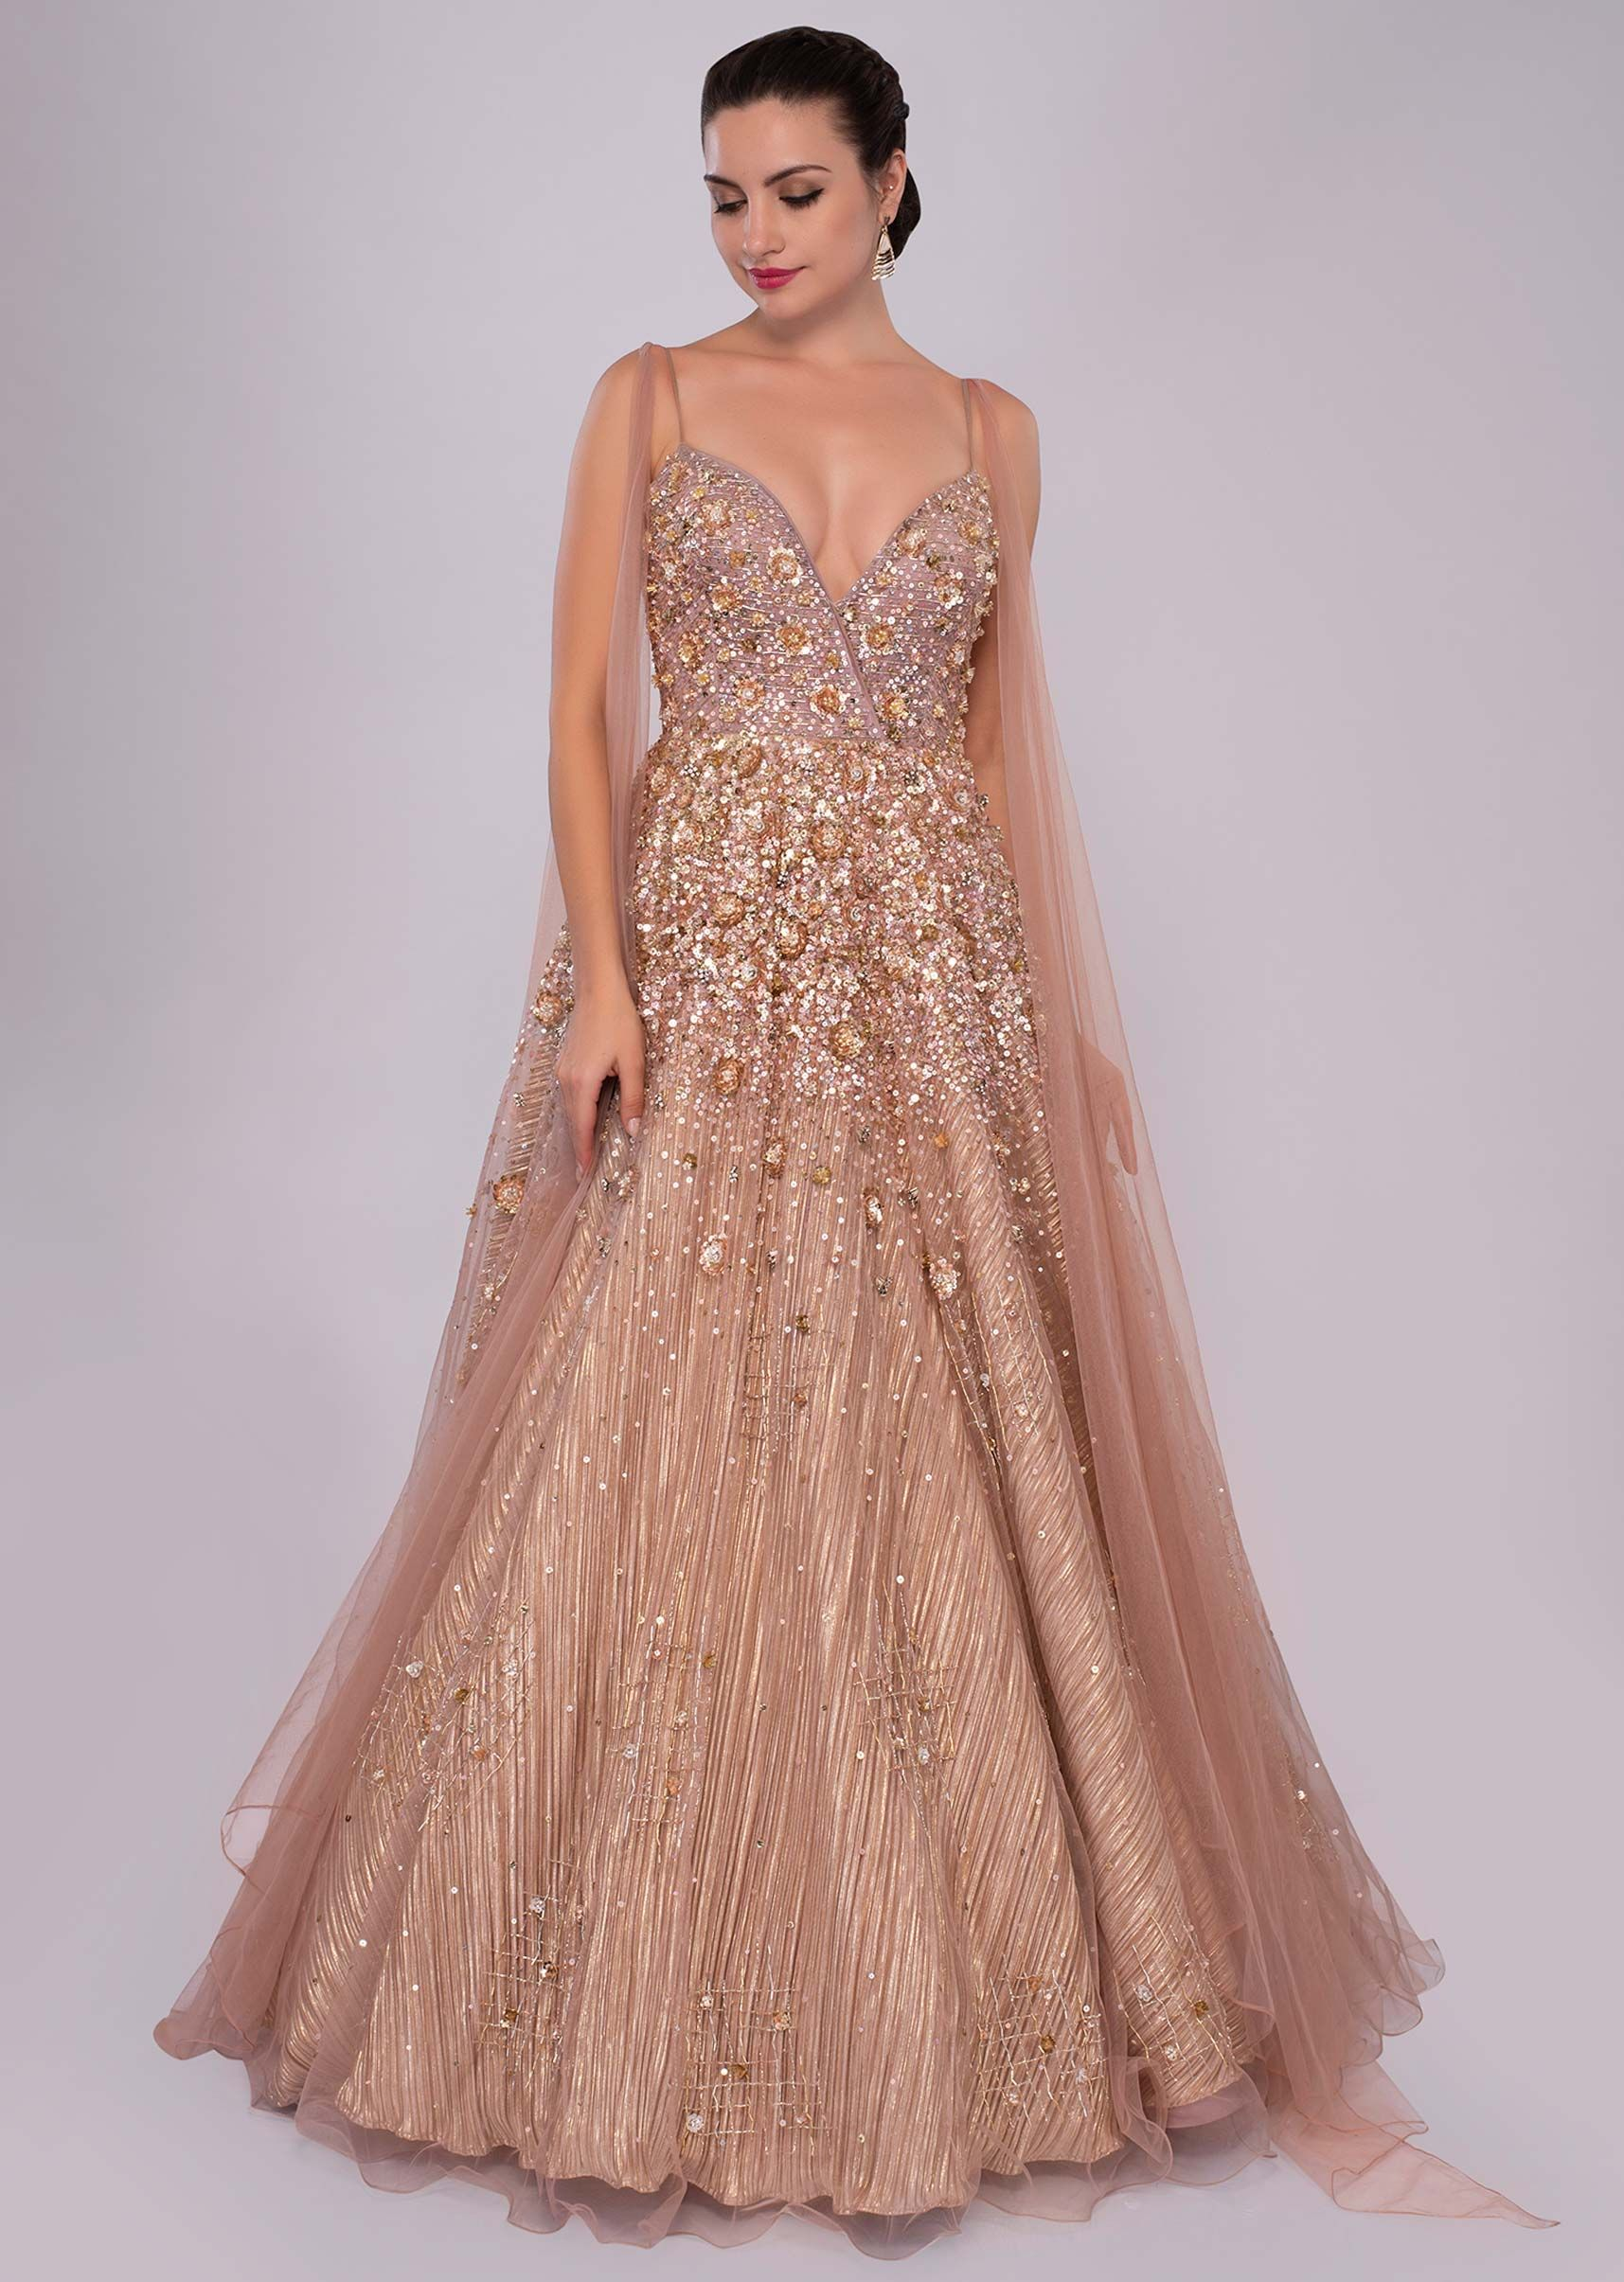 1053c51e57 Party Wear · Evening Gowns · Bridal Gowns · Bodice · Sequins · Buy Online  from the link below. We ship worldwide (Free Shipping over US 100